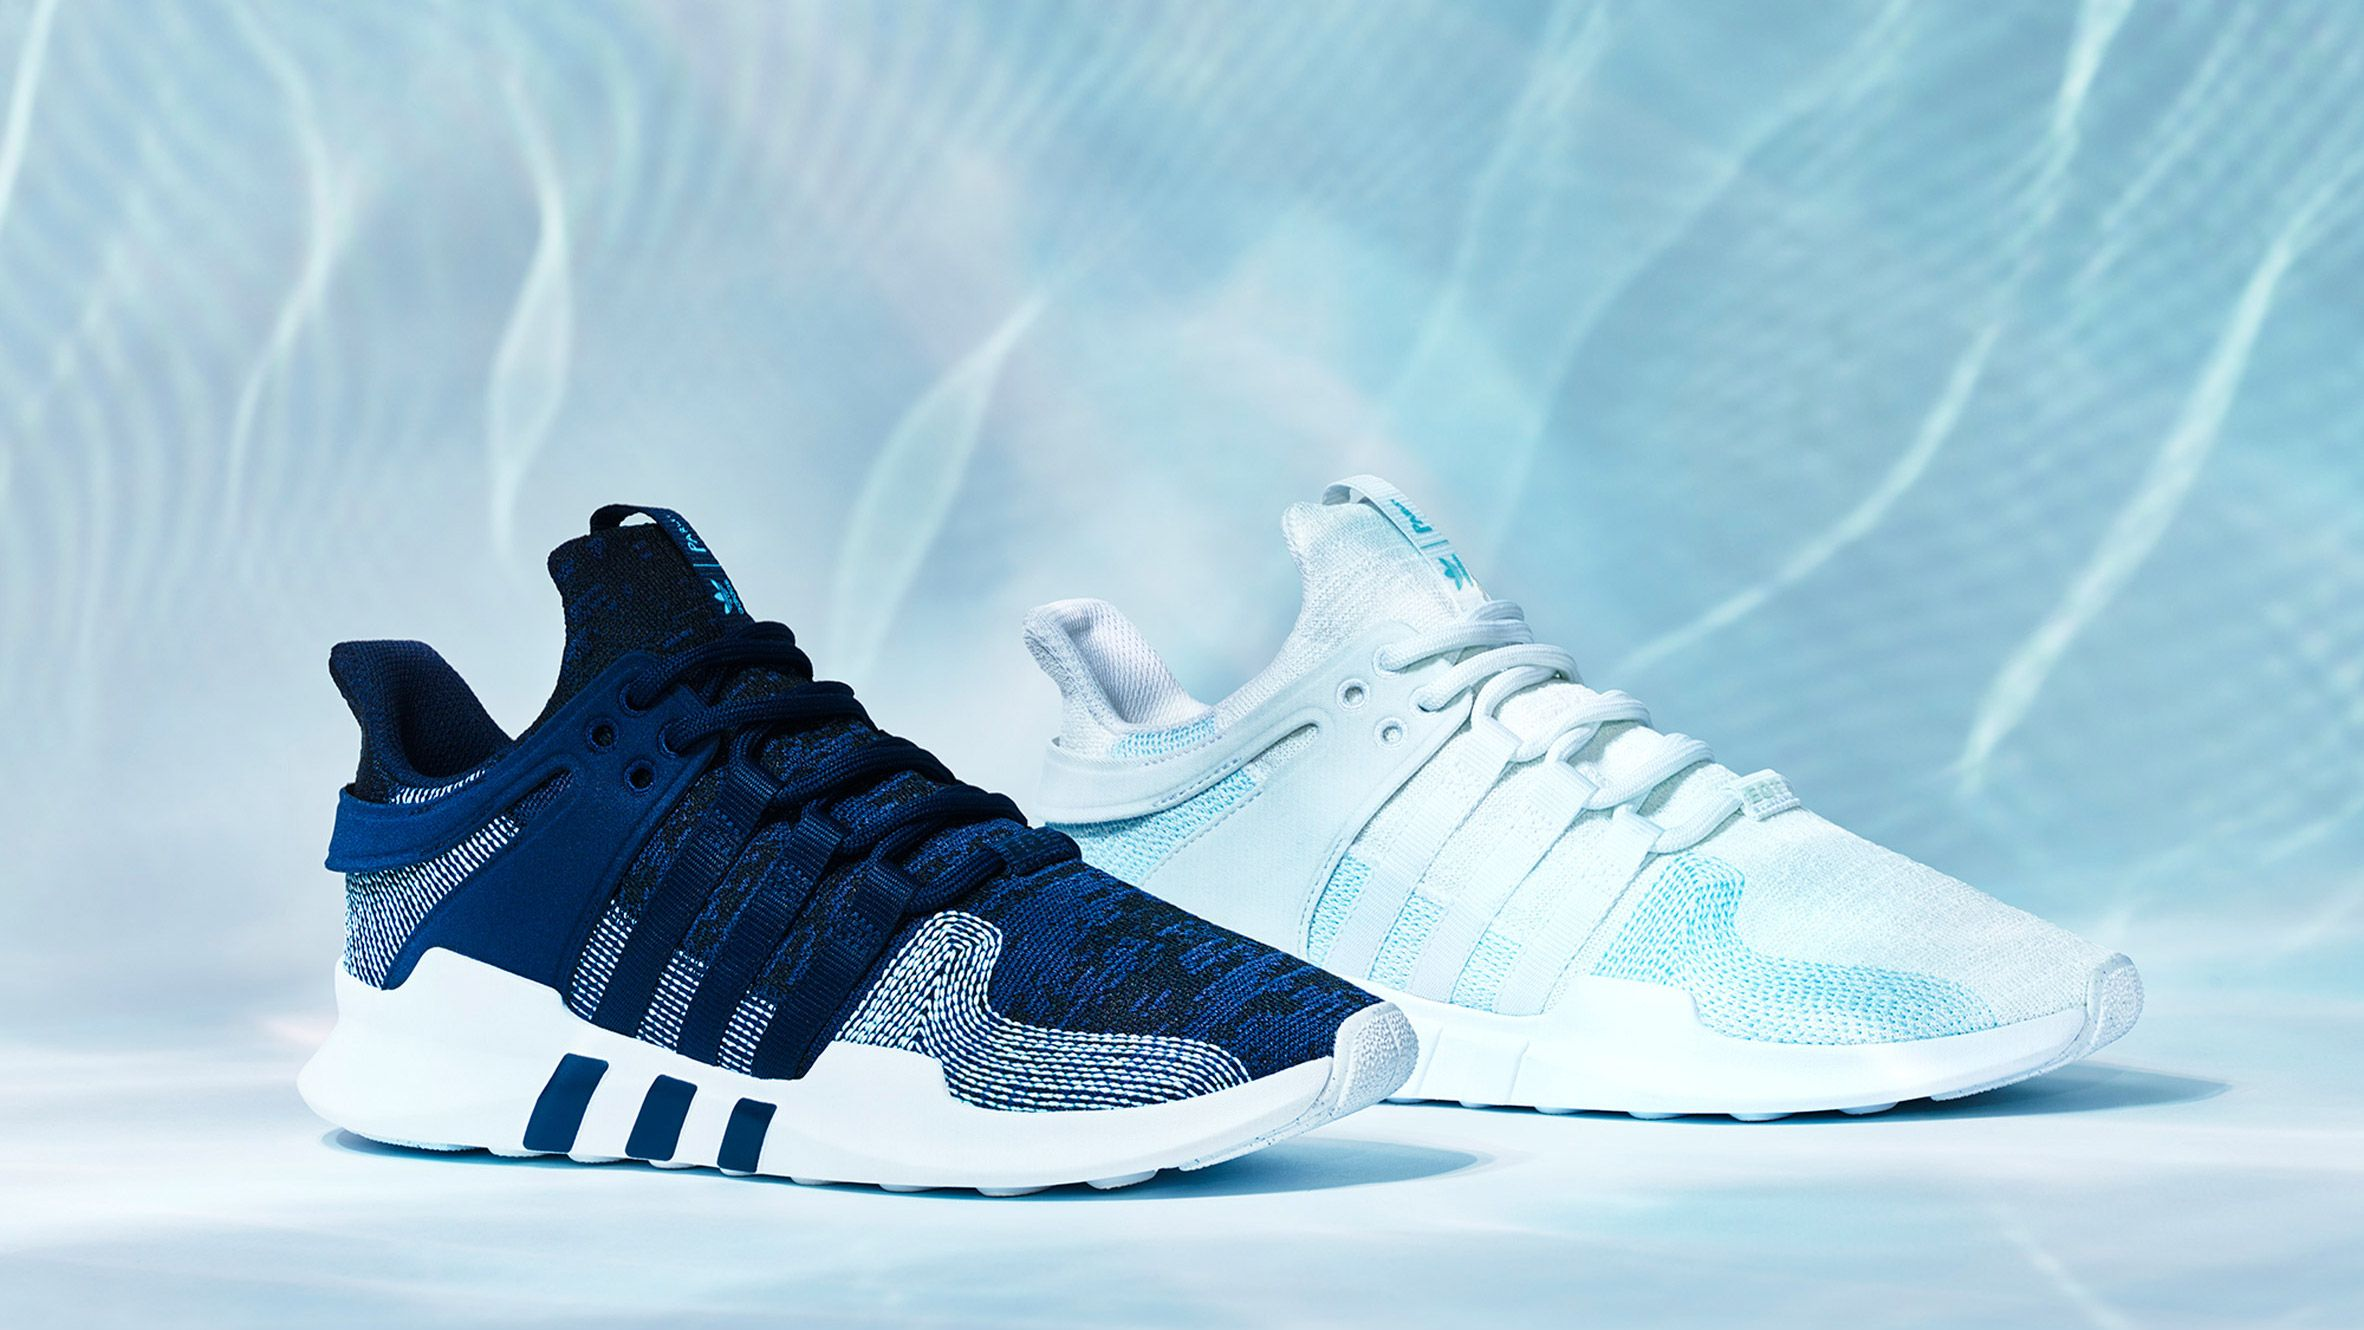 Adidas uses Parley ocean plastic to update one of its